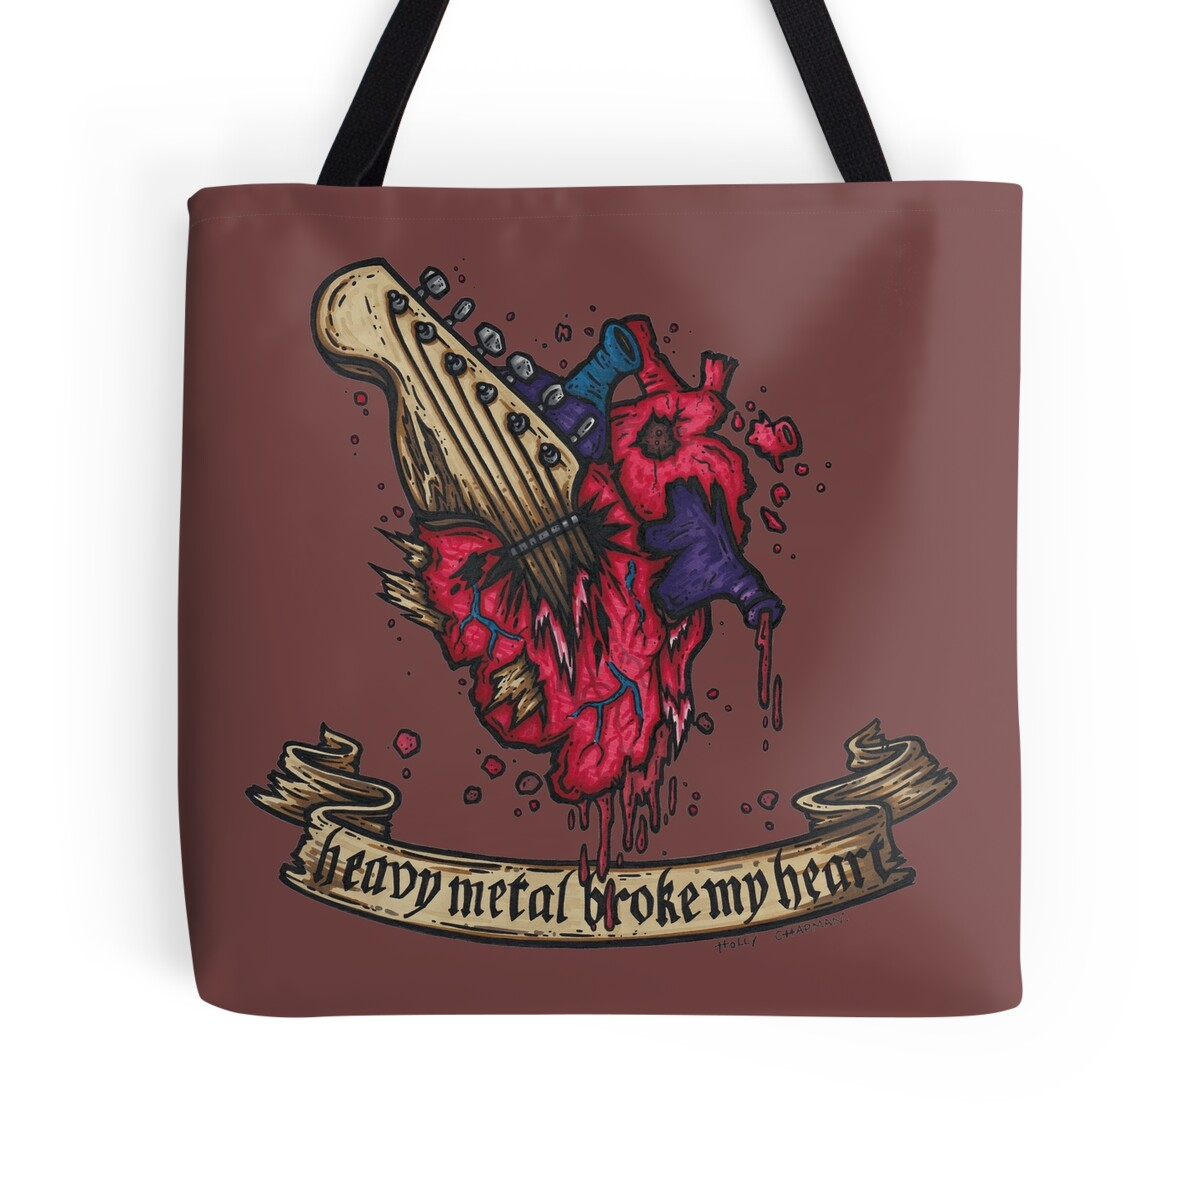 "heavy metal broke my heart!"" tote bags by holz-toons 